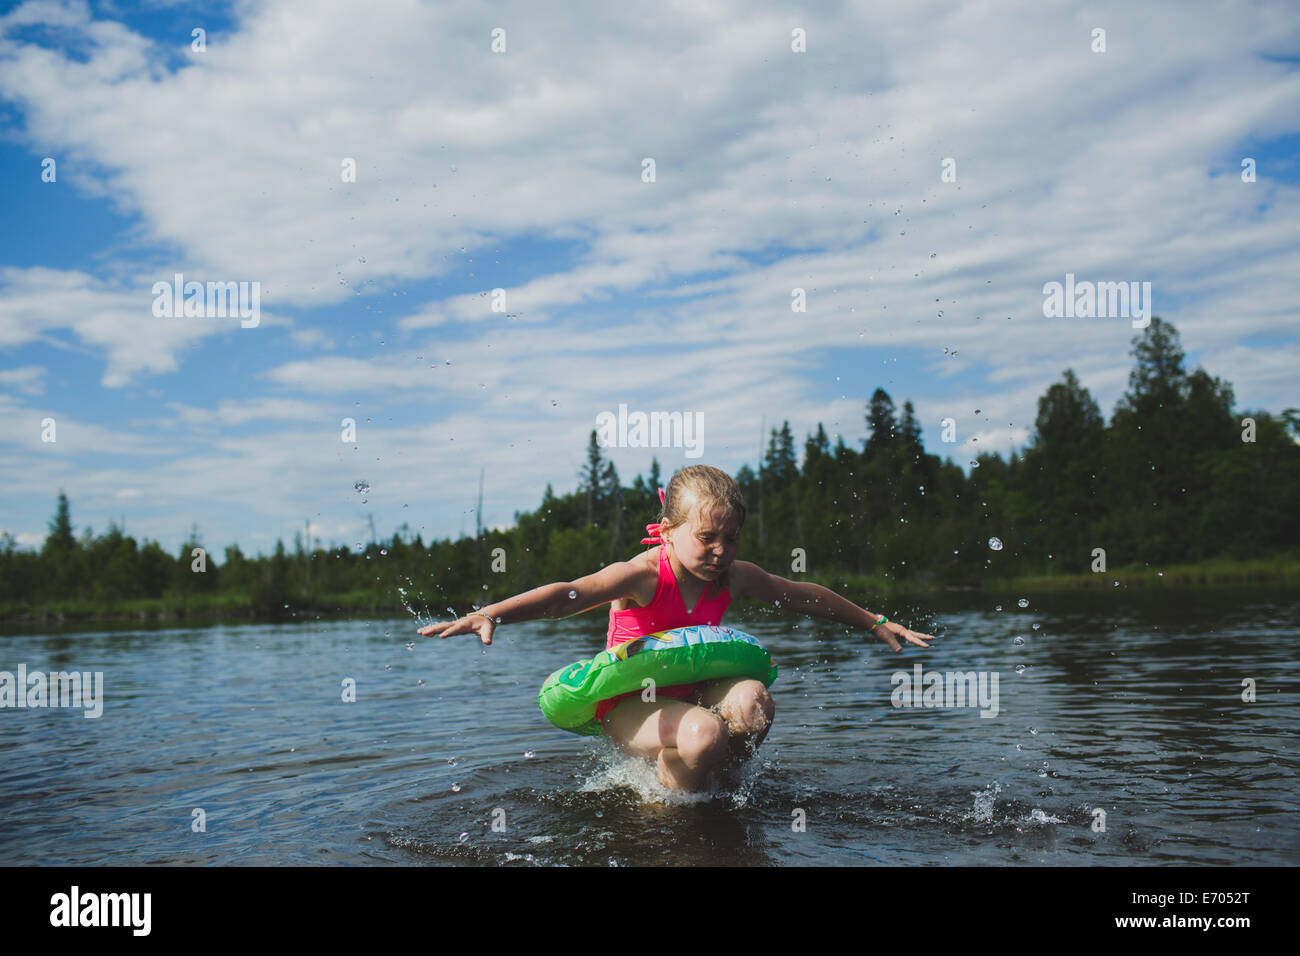 Girl with rubber ring jumping in Indian river, Ontario, Canada - Stock Image